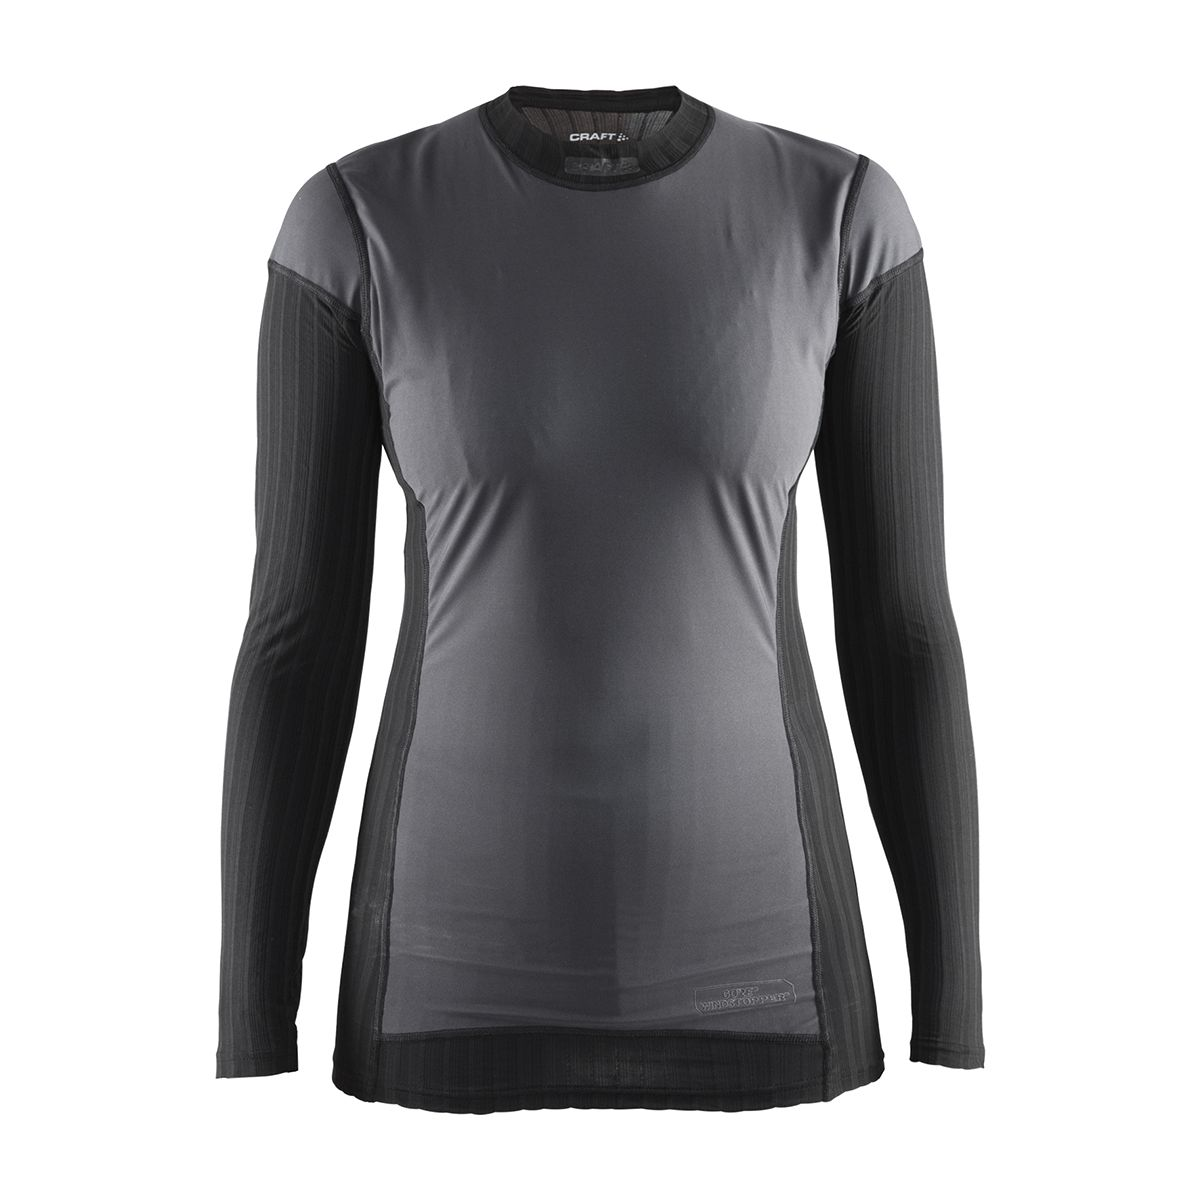 CRAFT ACTIVE EXTREME 2.0 CN LS WS women's base layer | Base layers